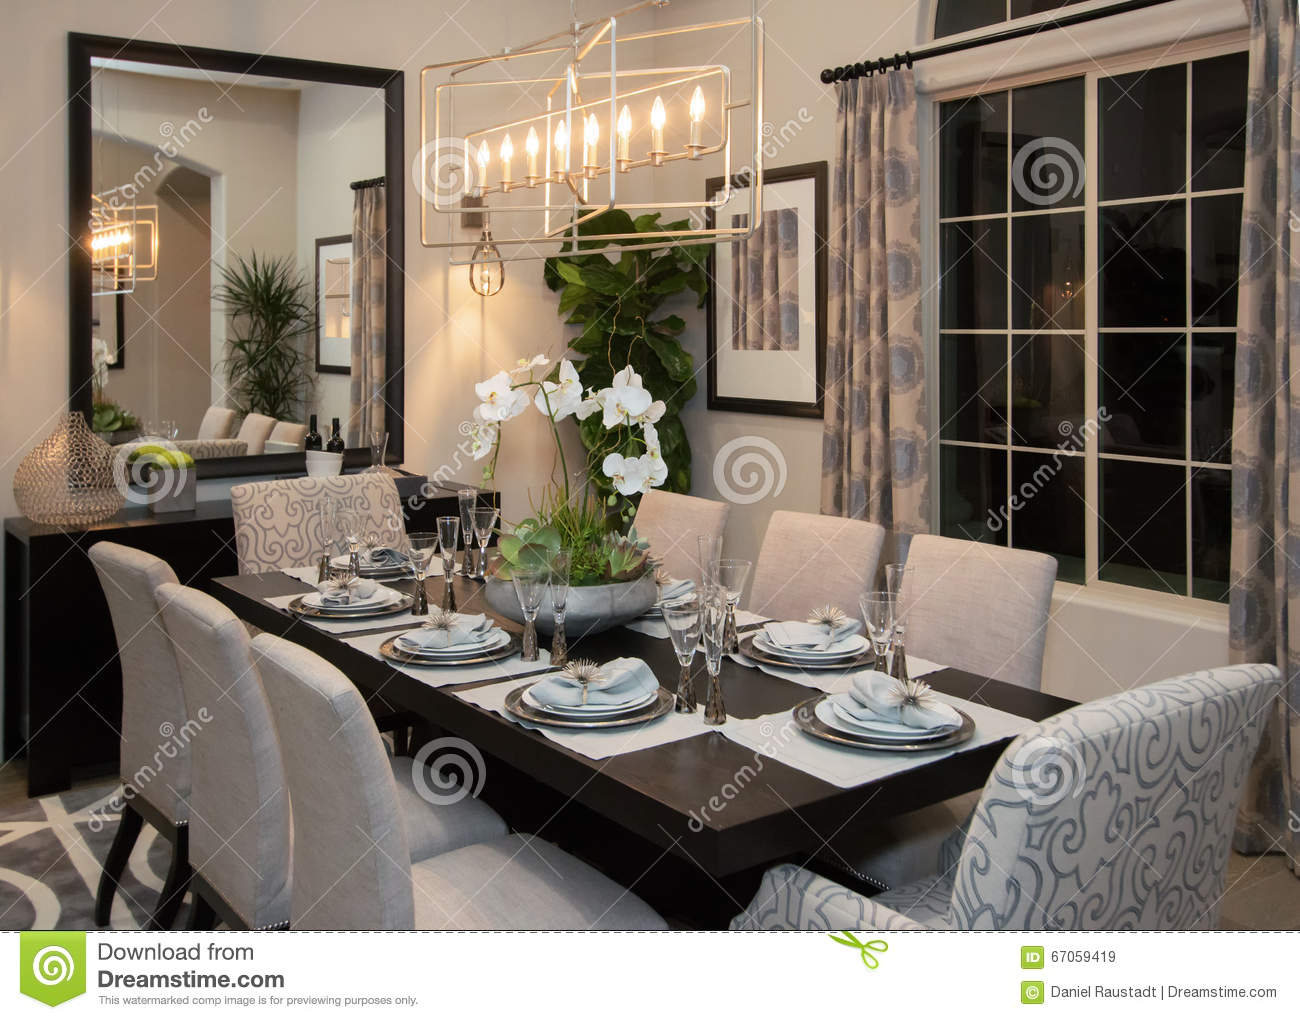 New Modern Home Fine Formal Dining Room Stock Image - Image of ...